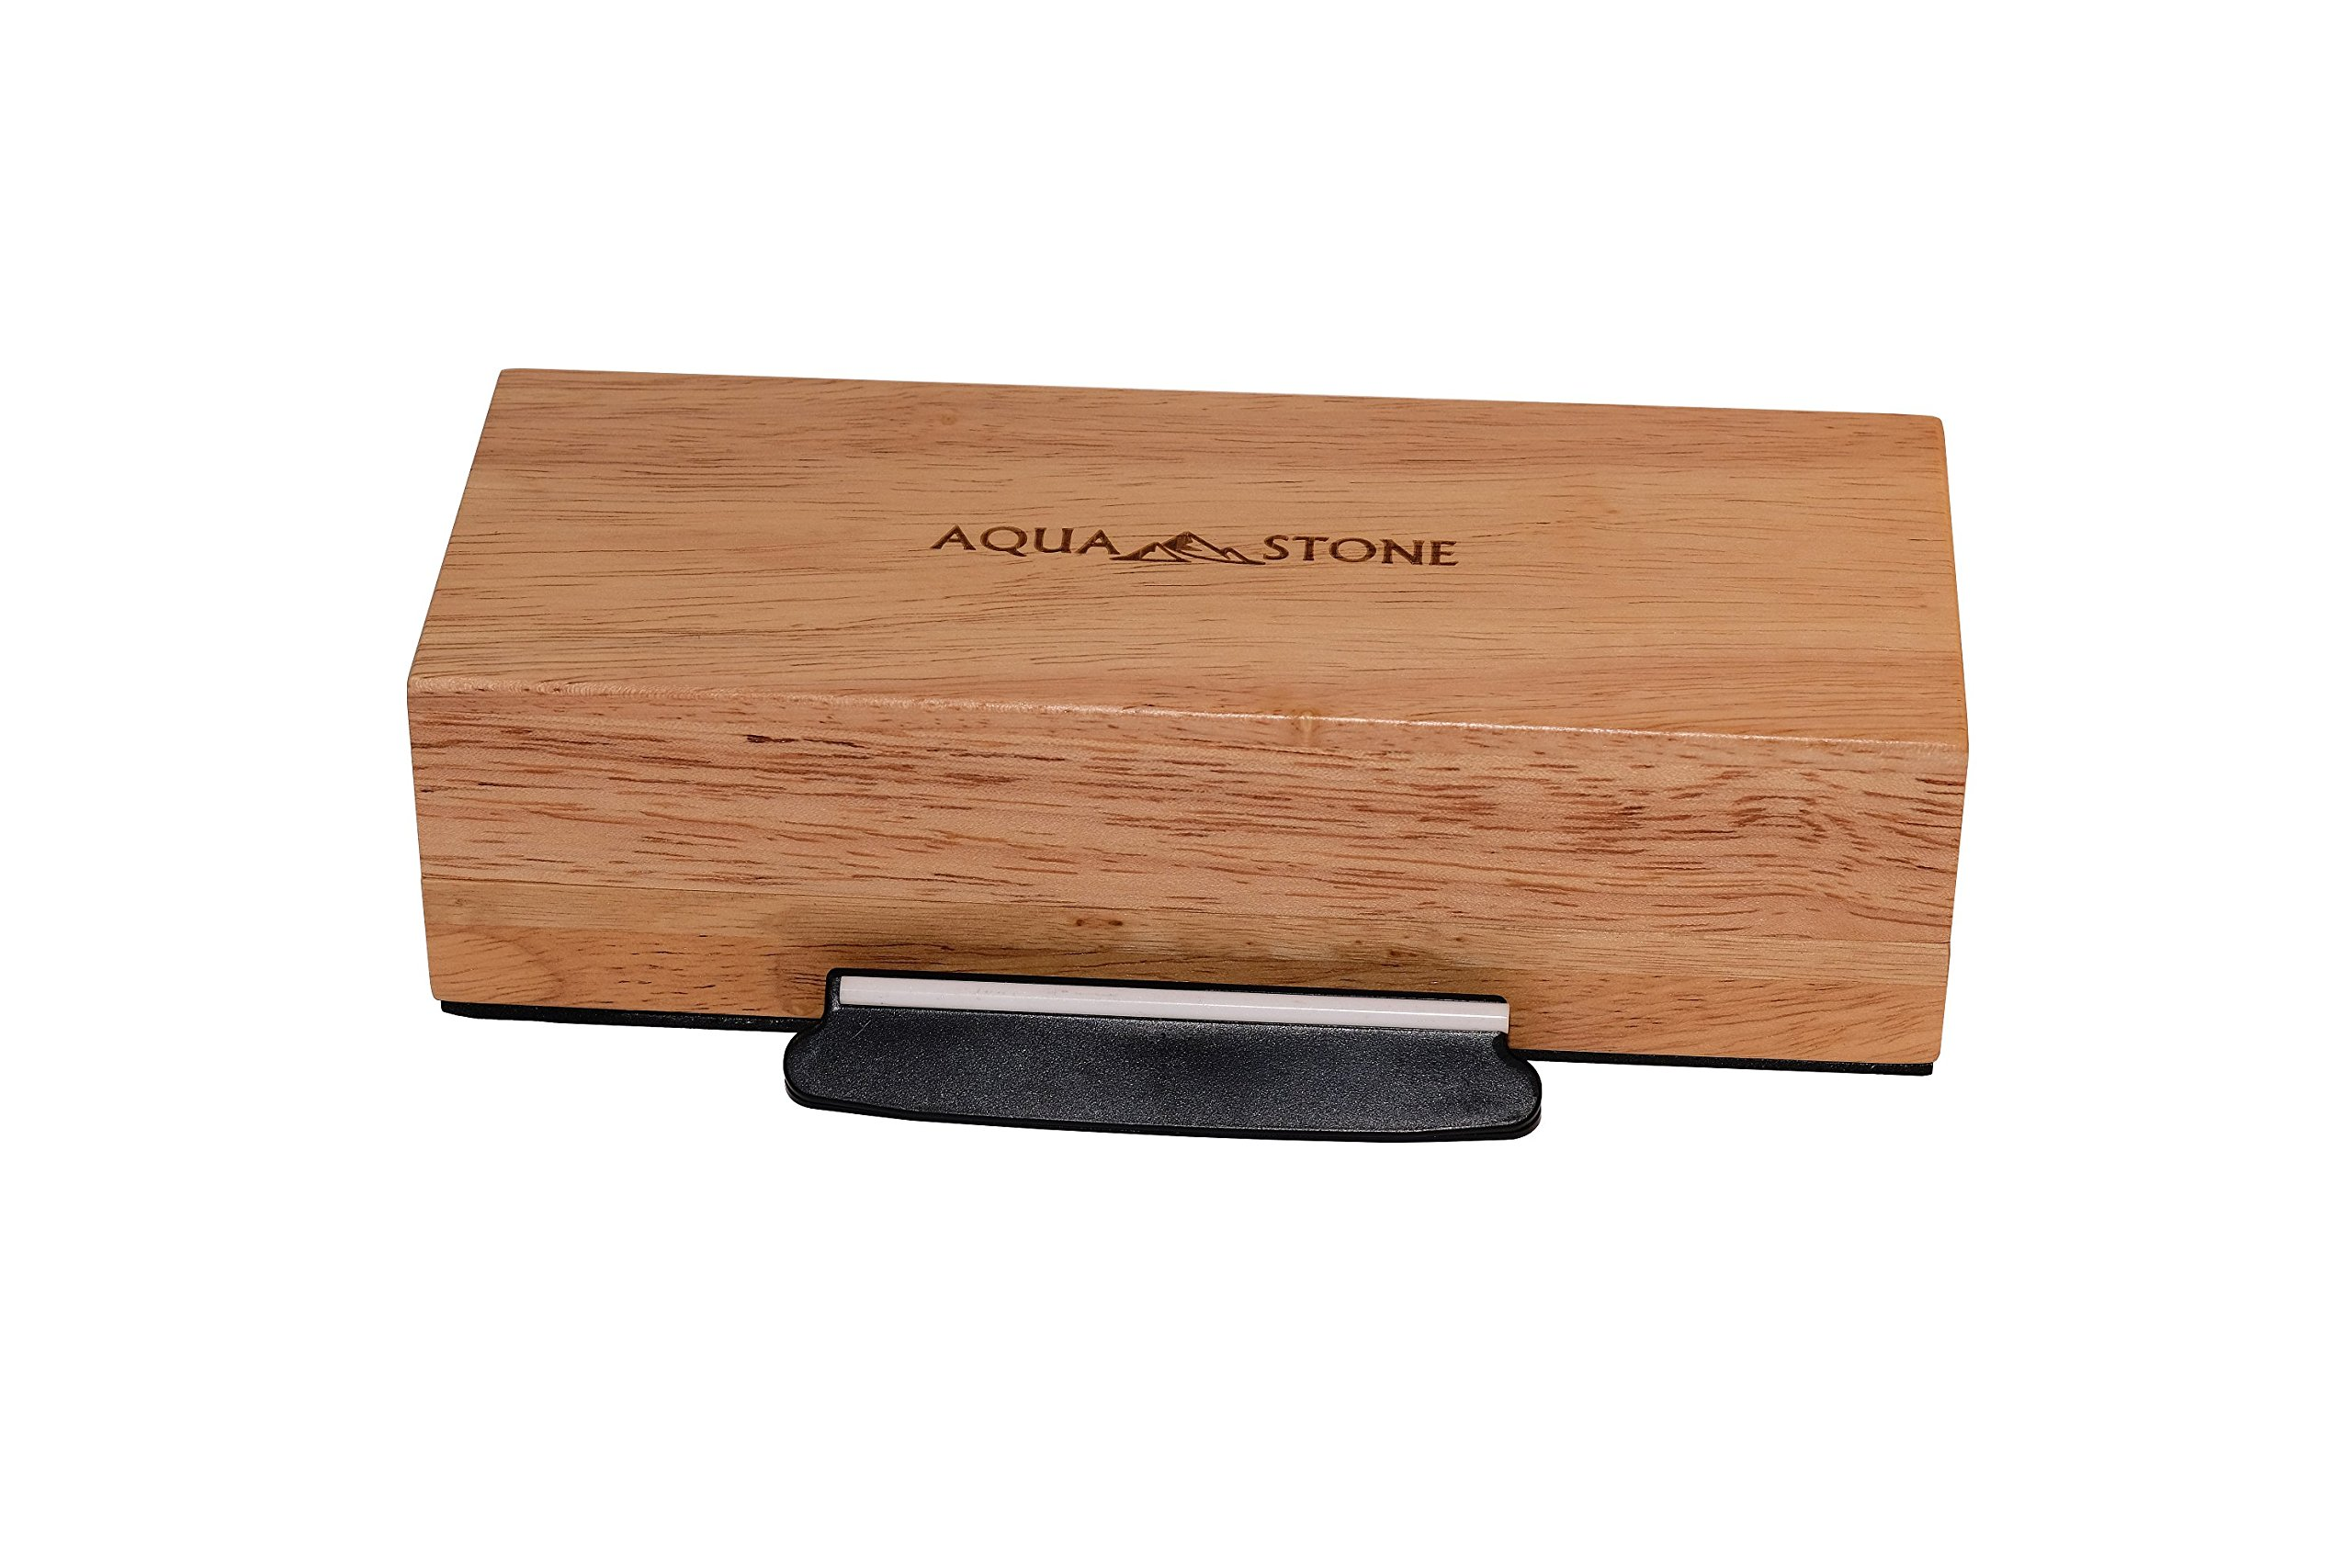 Professional Knife Sharpener 2 Side Sharpening Stone Kit For Chefs, Home Kitchen Knives.Whetstone Grit 1000/6000 Watersone,NonSlip Wood Base, FREE Angle Guide, Silicone Base with Stylish Wood GIFT Box by Aquastone (Image #4)